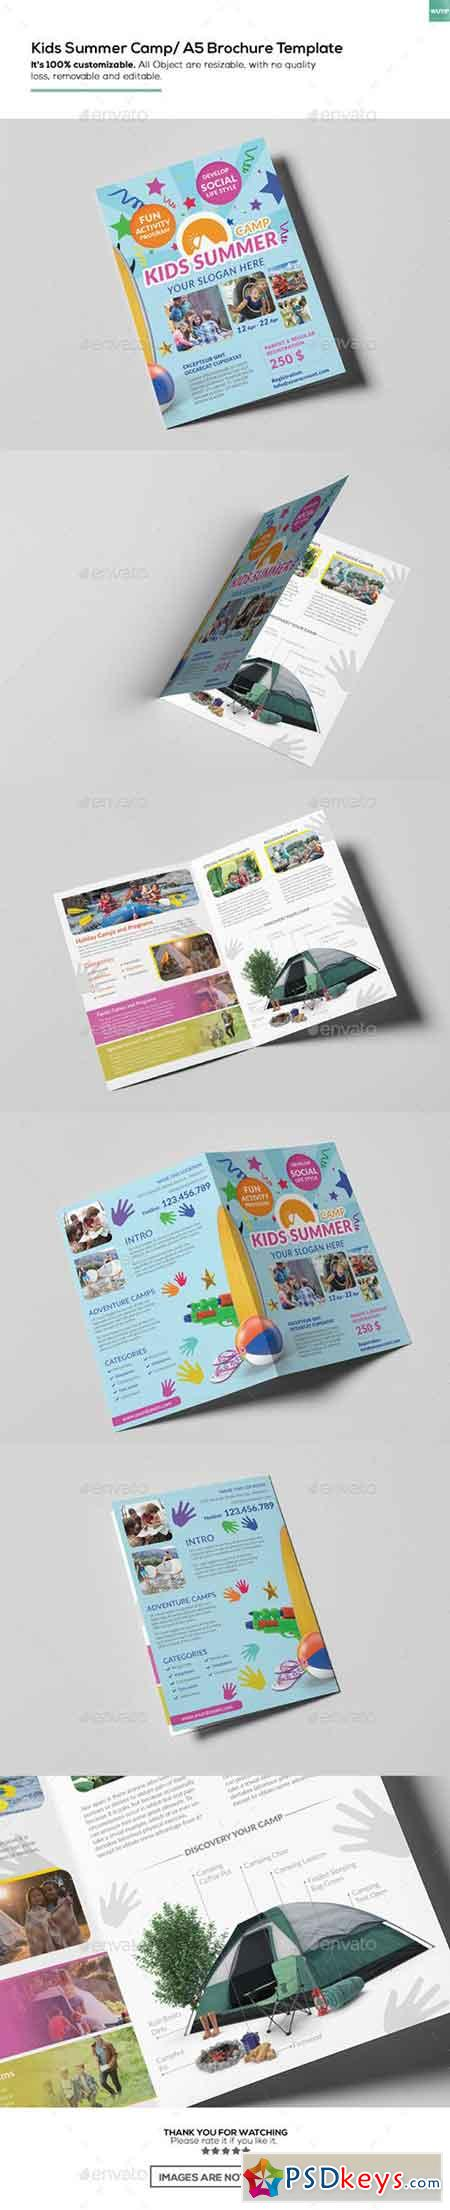 Kids Summer Camp A Brochure Template Free Download - A5 brochure template